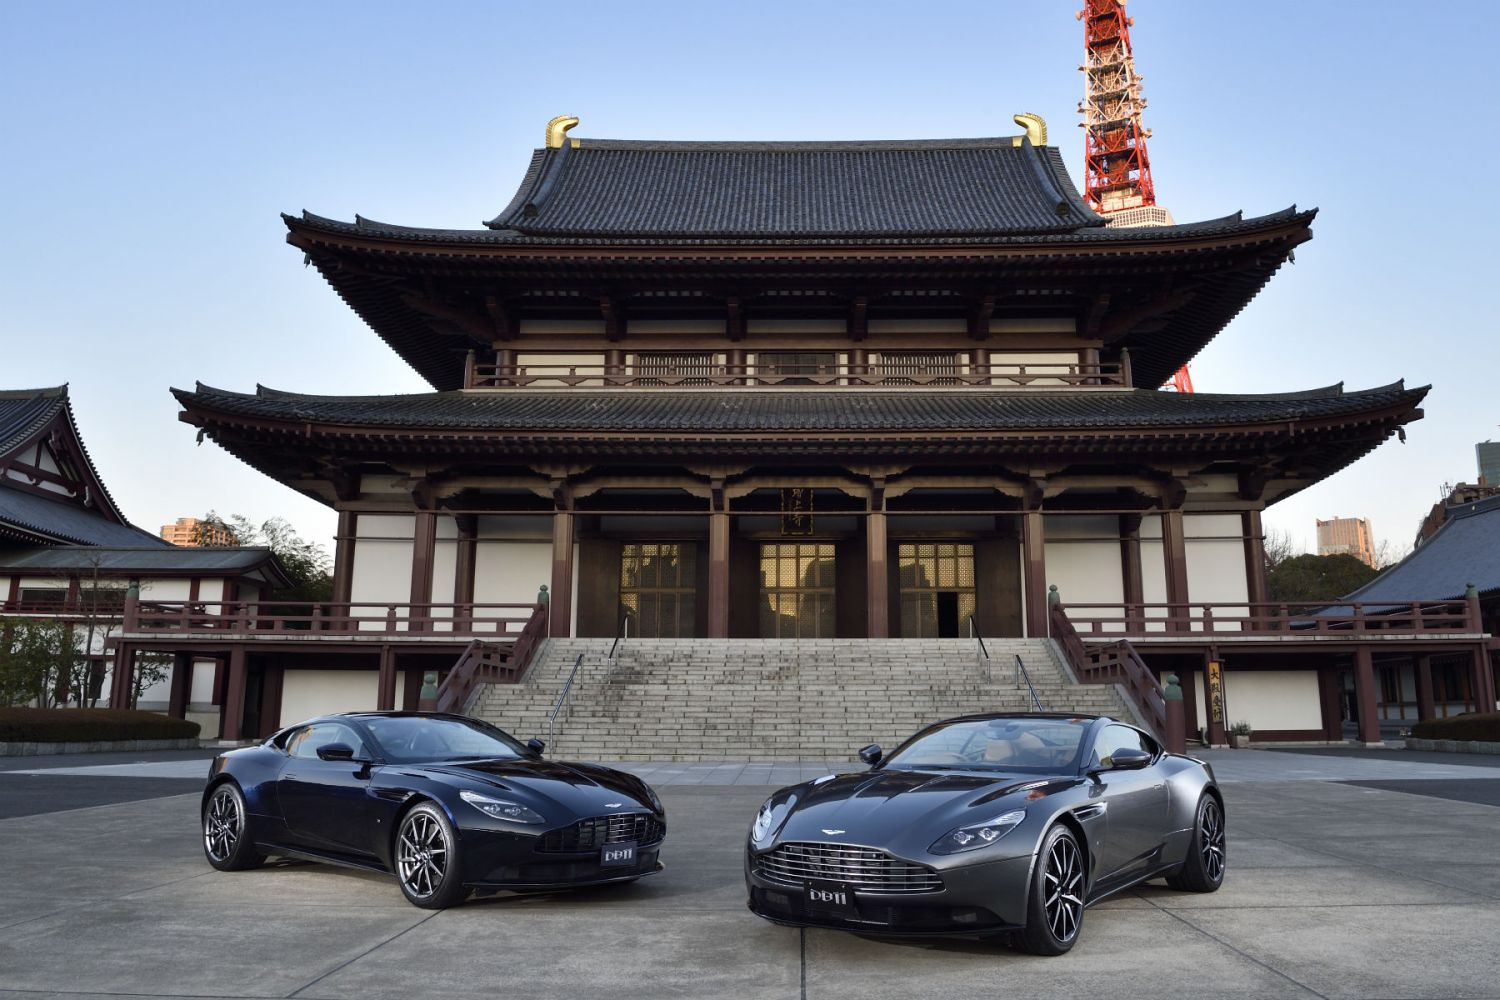 Aston Martin agrees £500 million trade deal with Japan